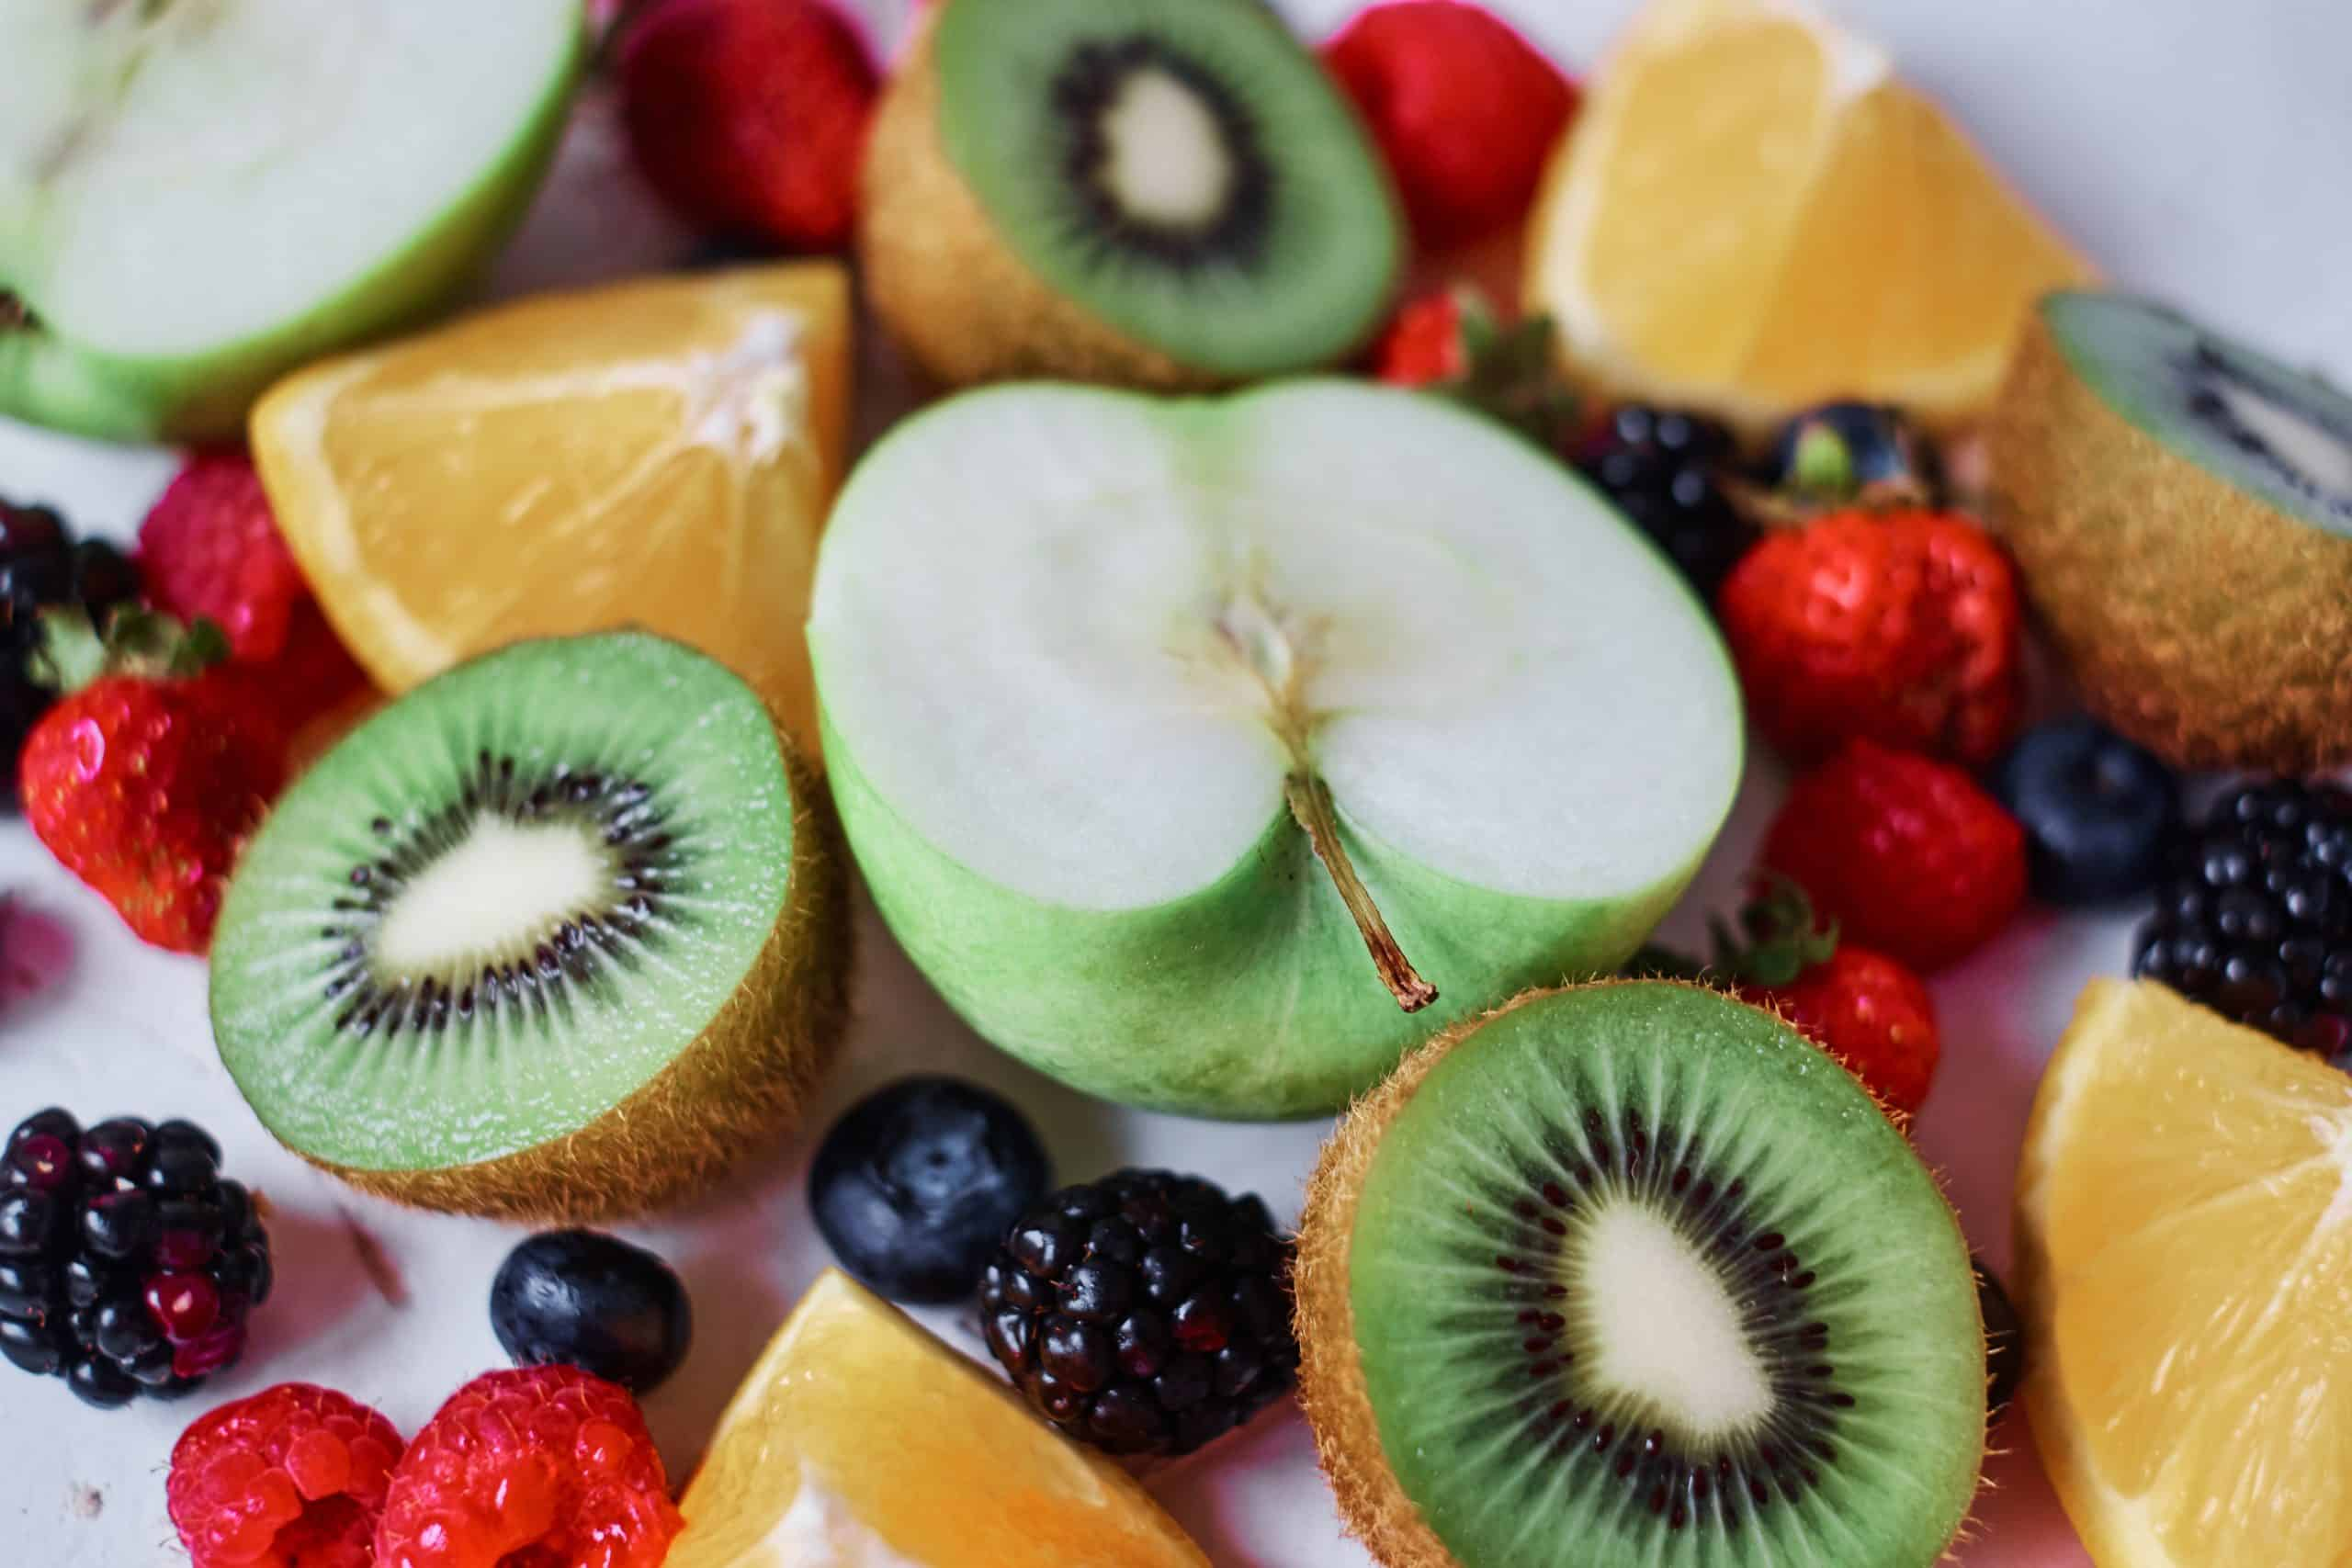 Kiwis and green apples sliced in half, with quartered oranges, blackberries, blueberries and raspberries on a white background.